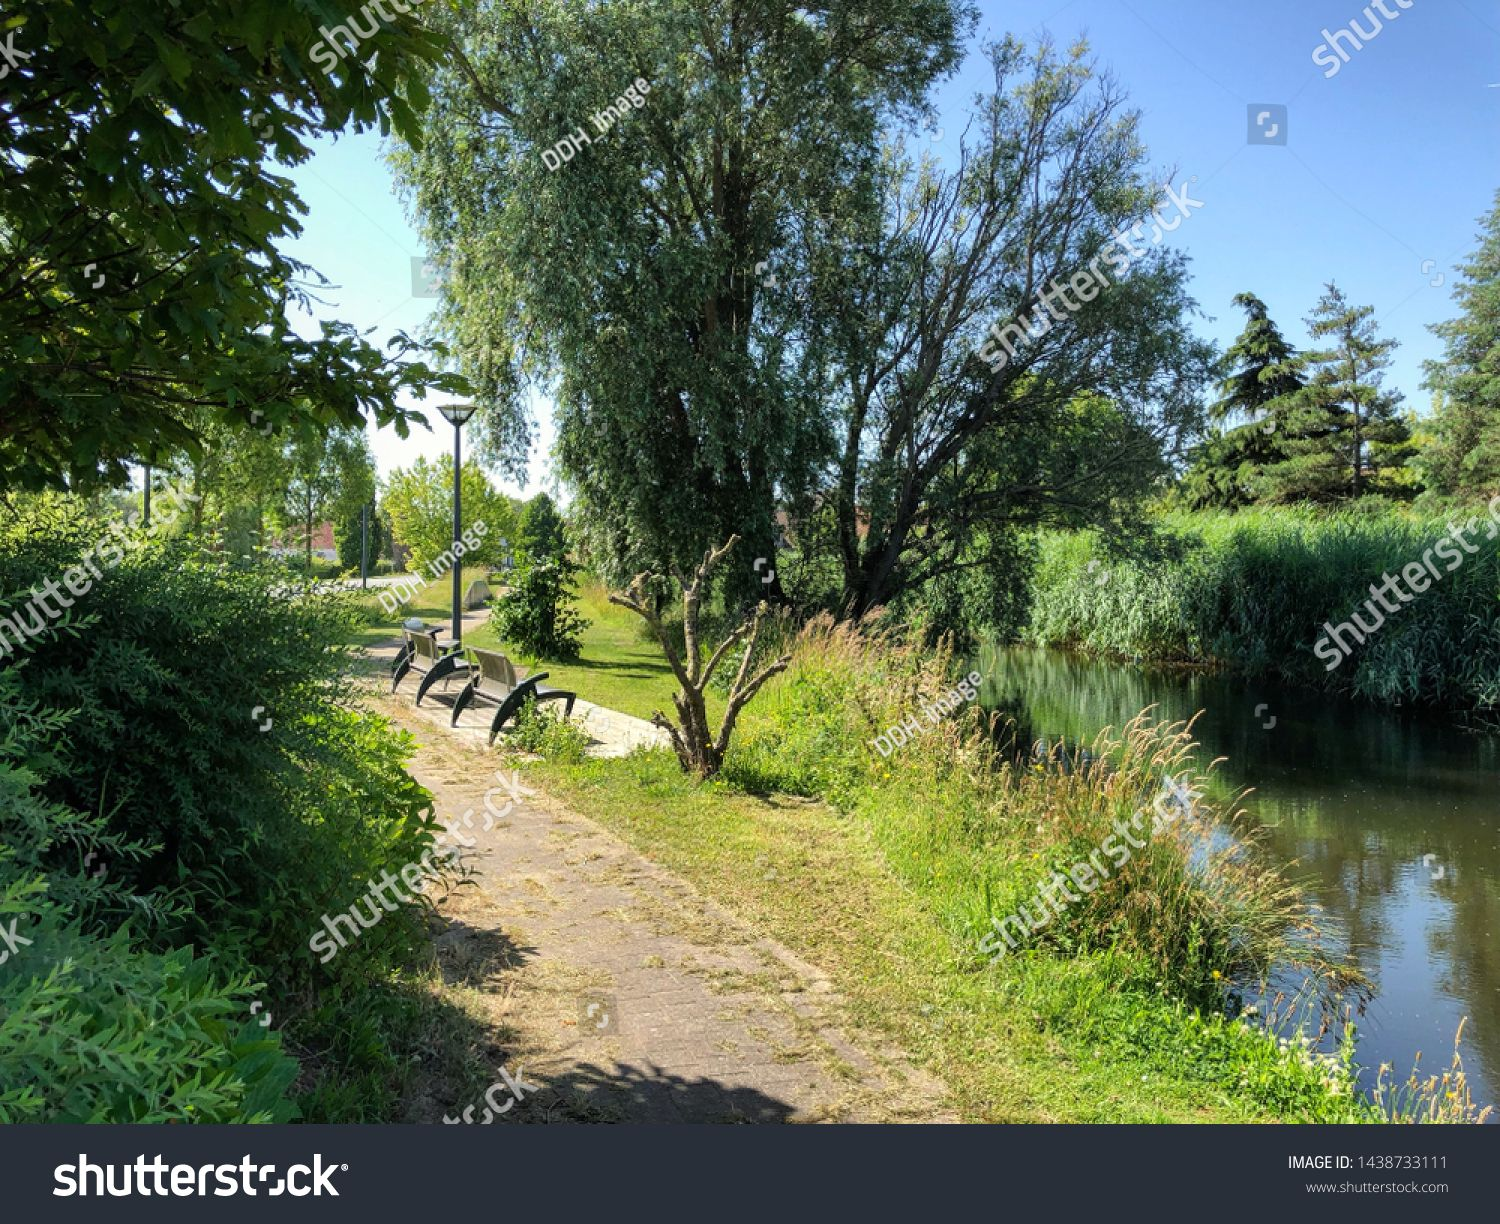 Outdoor Green Park Forest Next To River Rural Landscape Path With Trees And Grass And Modern Benche Sponsored Affiliate Fo Green Park Outdoor Park Forest